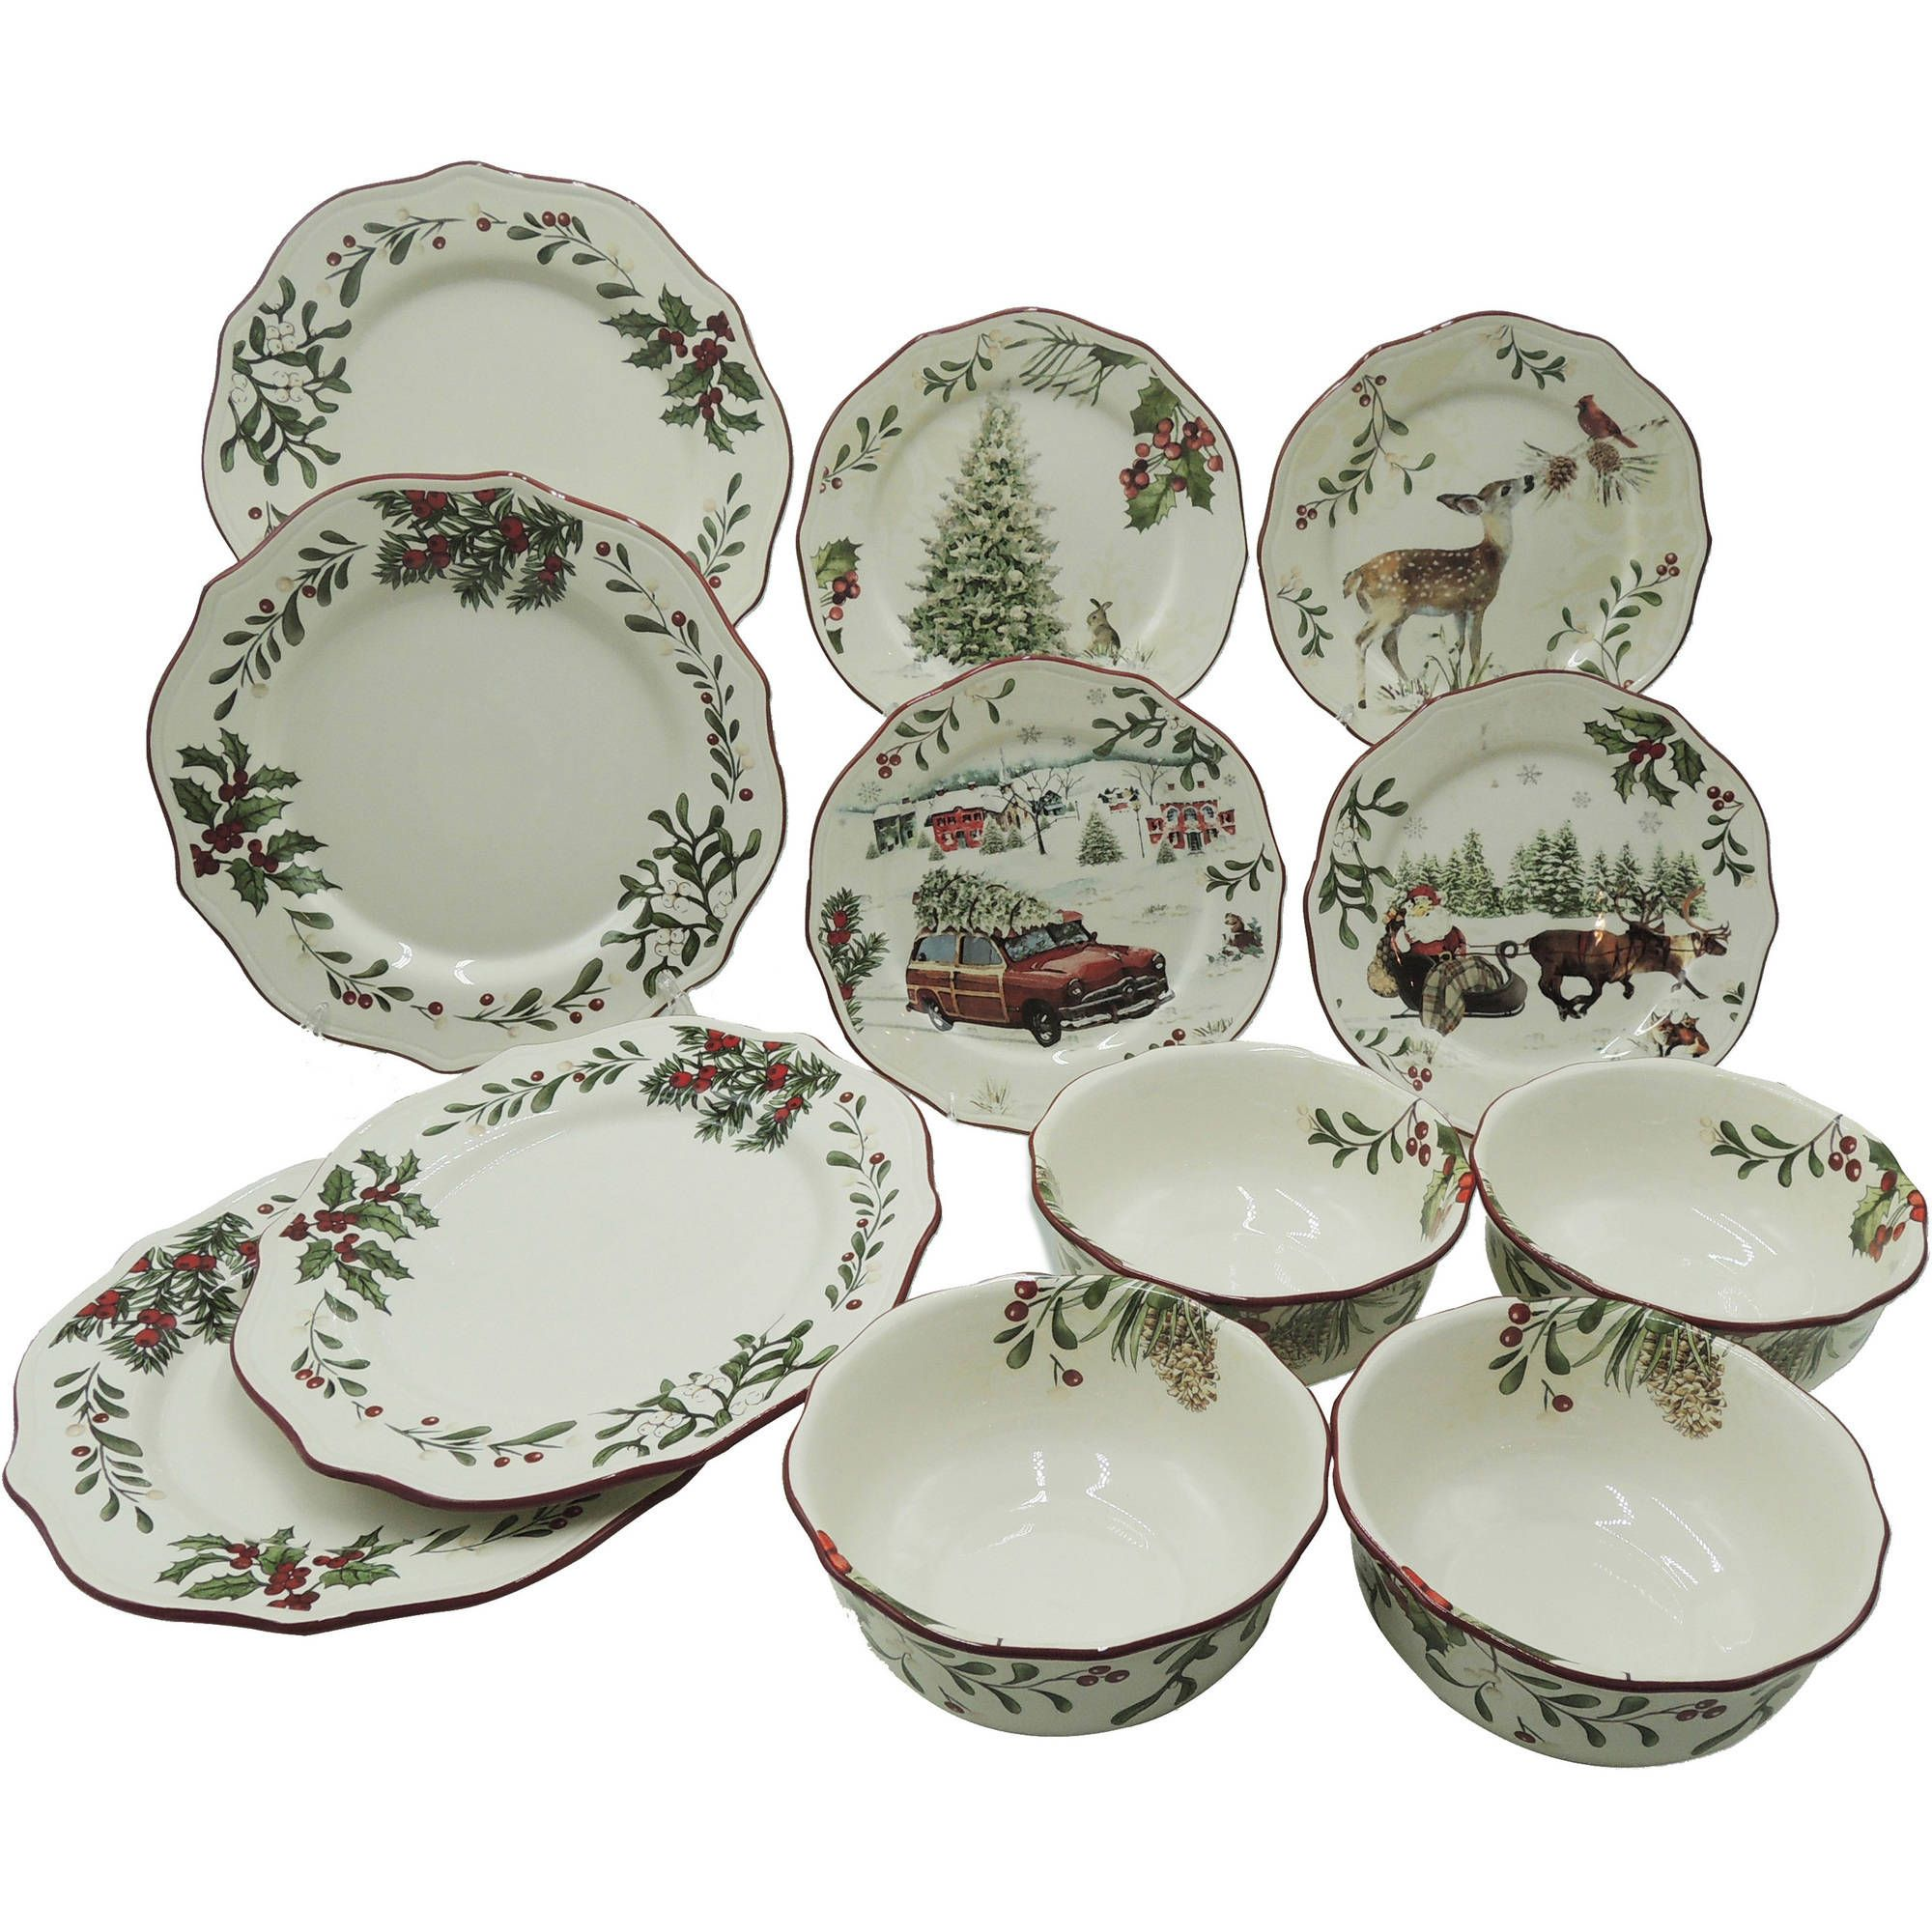 84adc4e2d5fa66898e23749b70166cad - Better Homes And Gardens Heritage 12 Piece Dinnerware Set